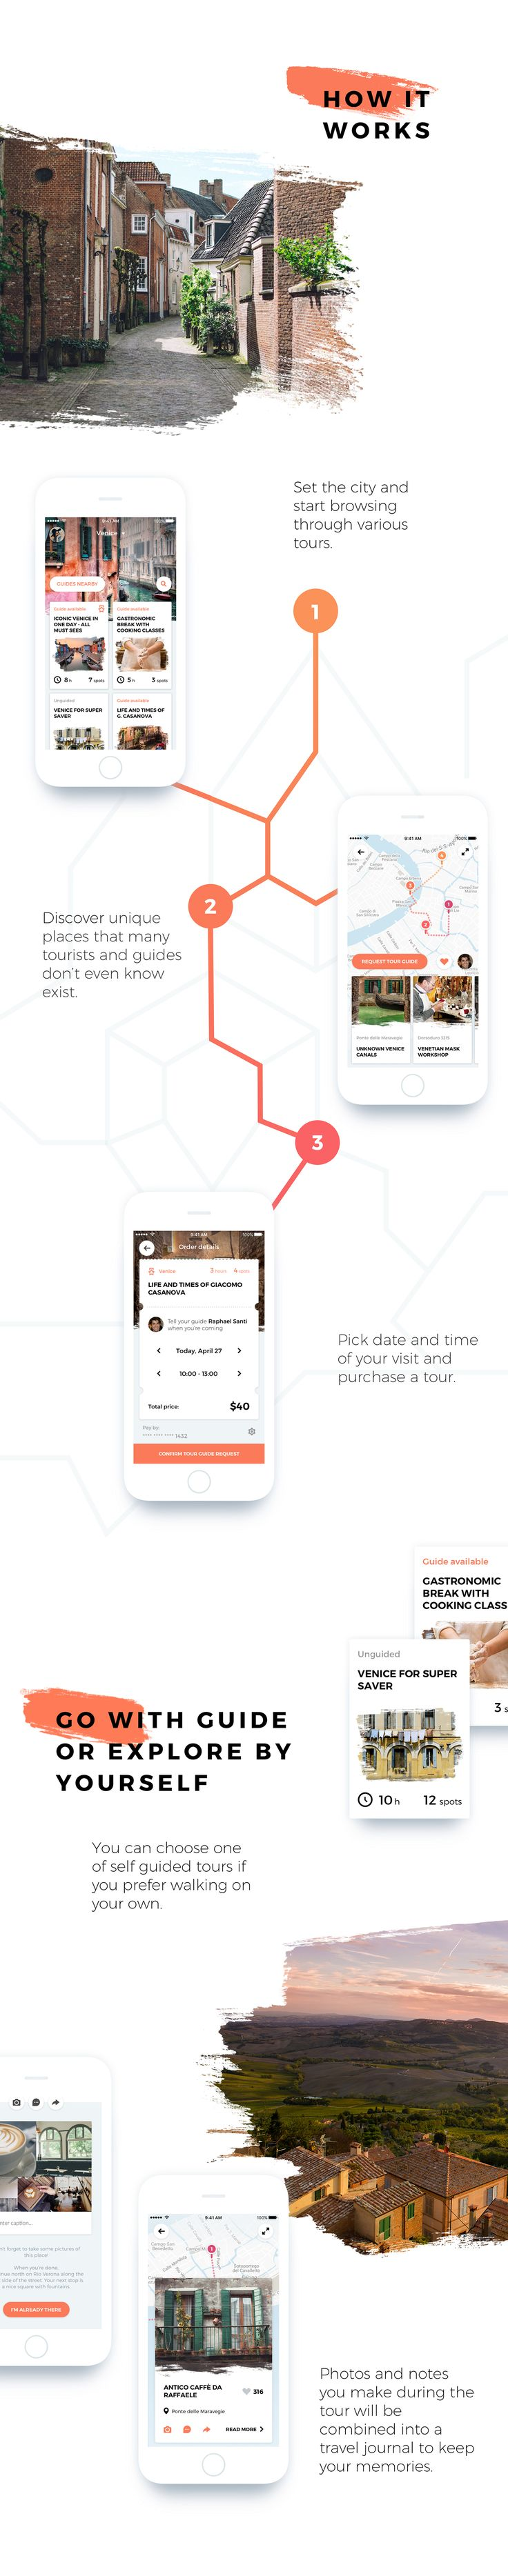 Trewel. Mobile app for travelers and local guides on Behance